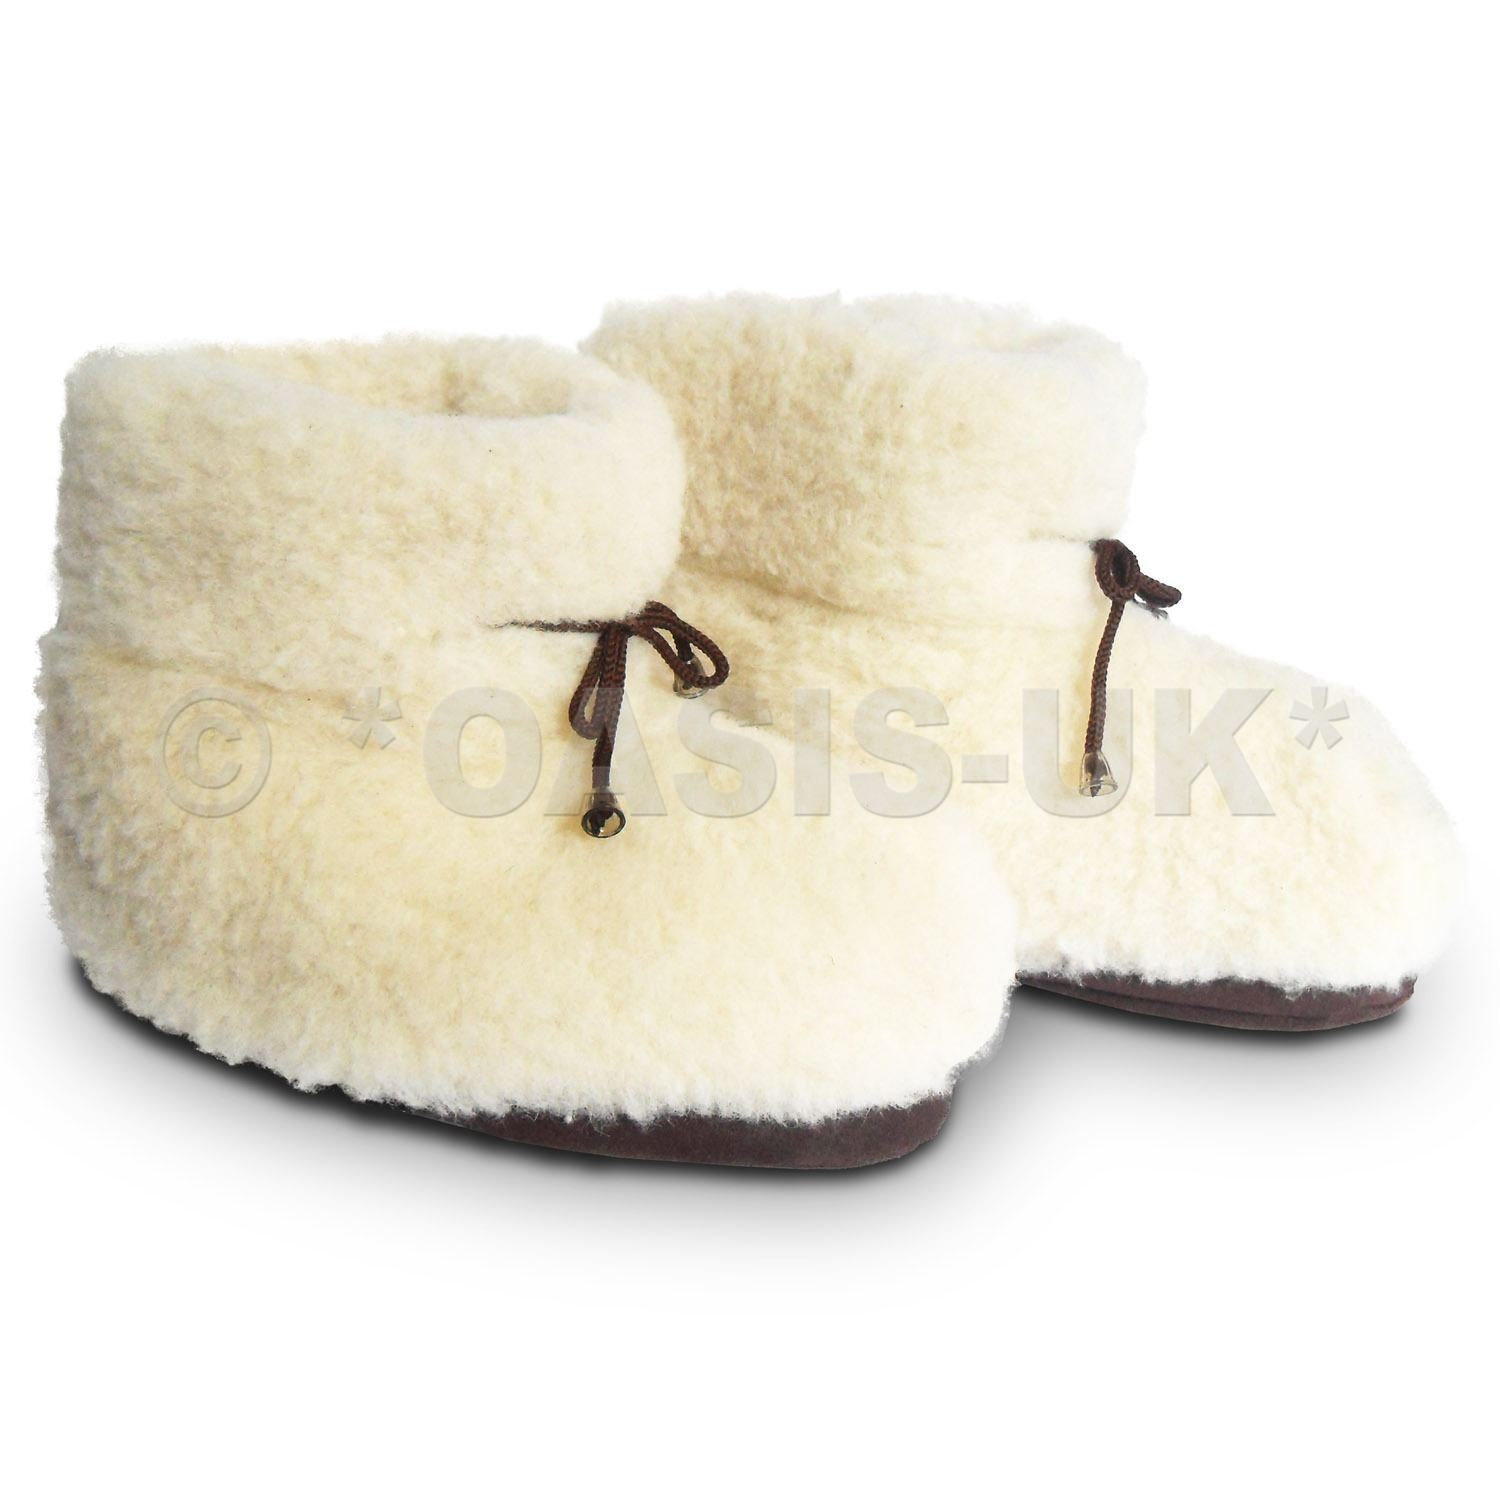 Cozy Foot 100% Pure Sheep Wool Wool Sheep - Unisex Slippers Hombre & Mujer - Cream 23d6c3